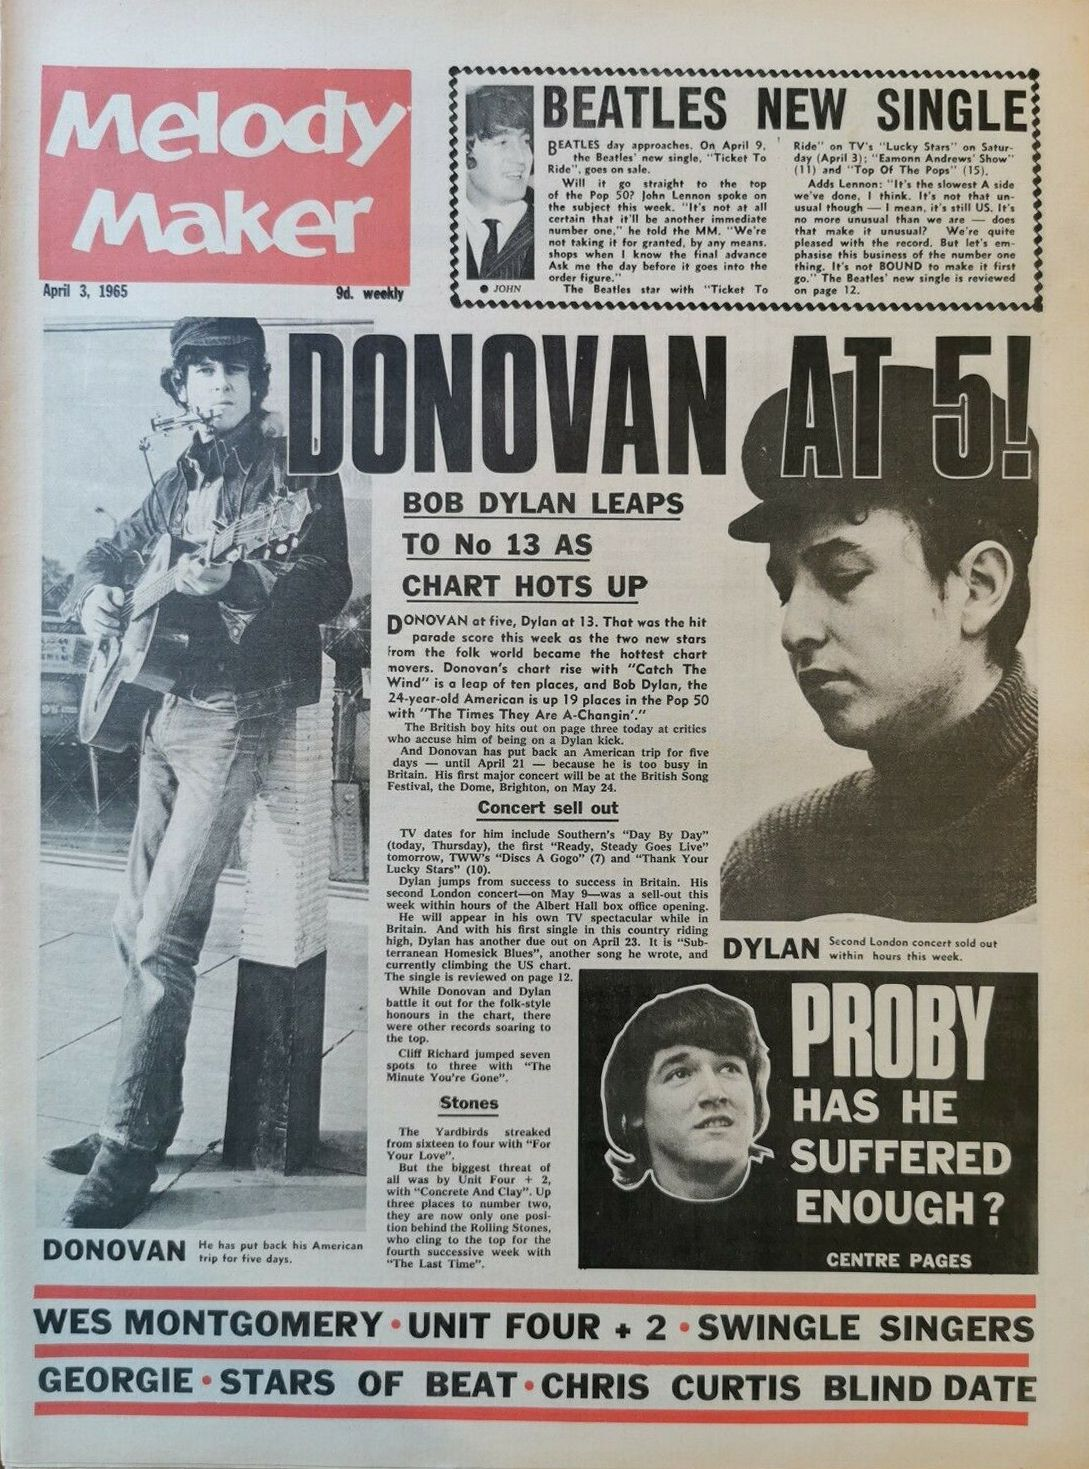 Melody Maker 4 April 1965 Bob Dylan cover story